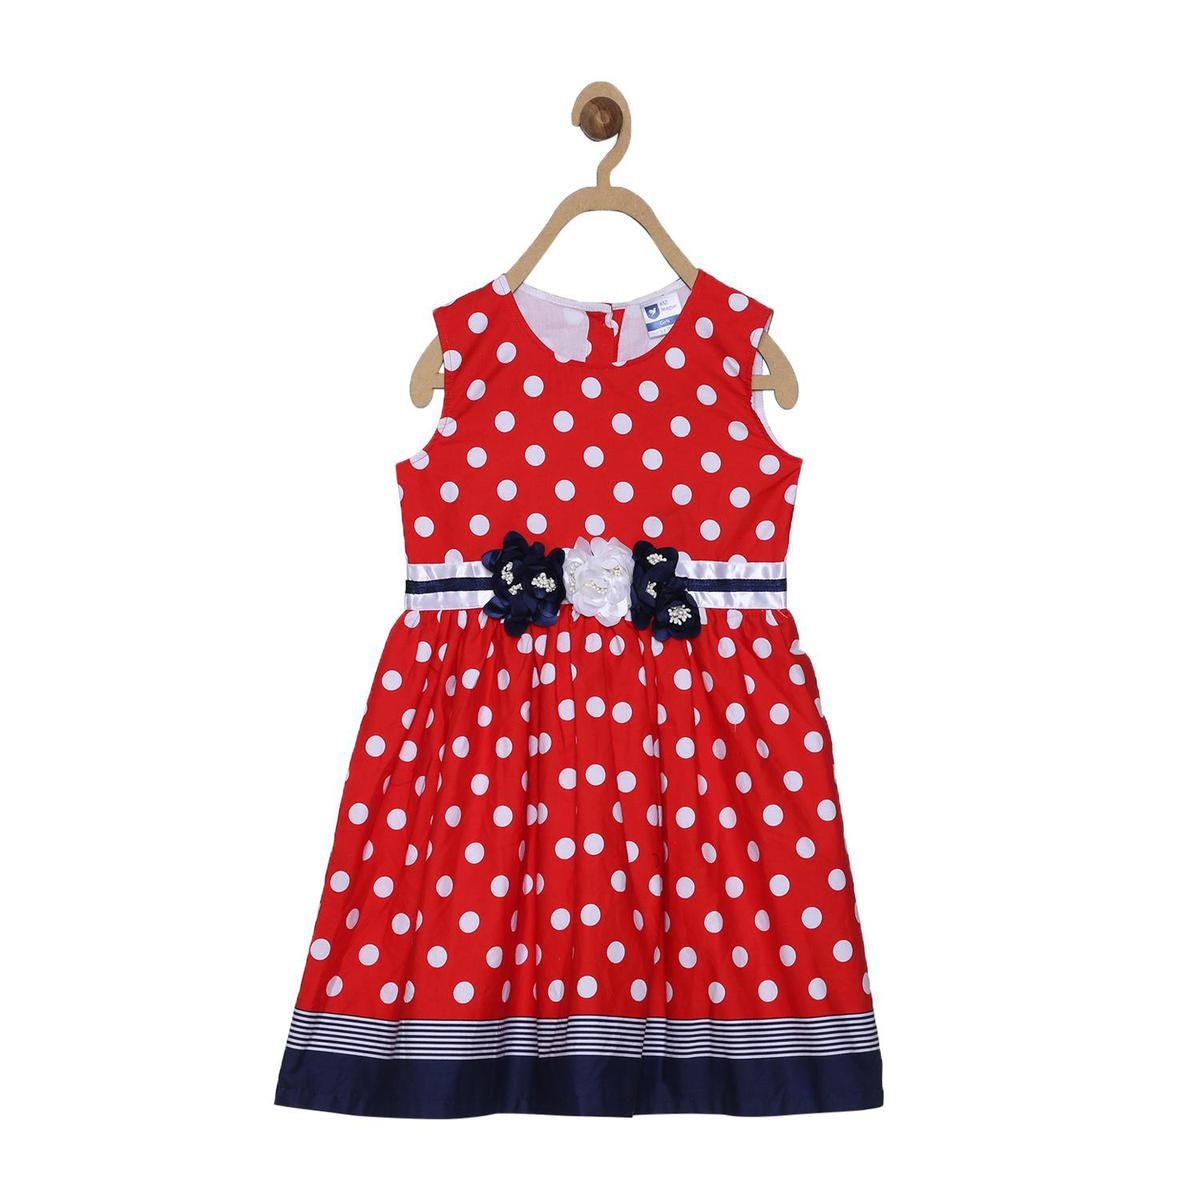 612 League - Red Colored Polka Printed Dress For Girls